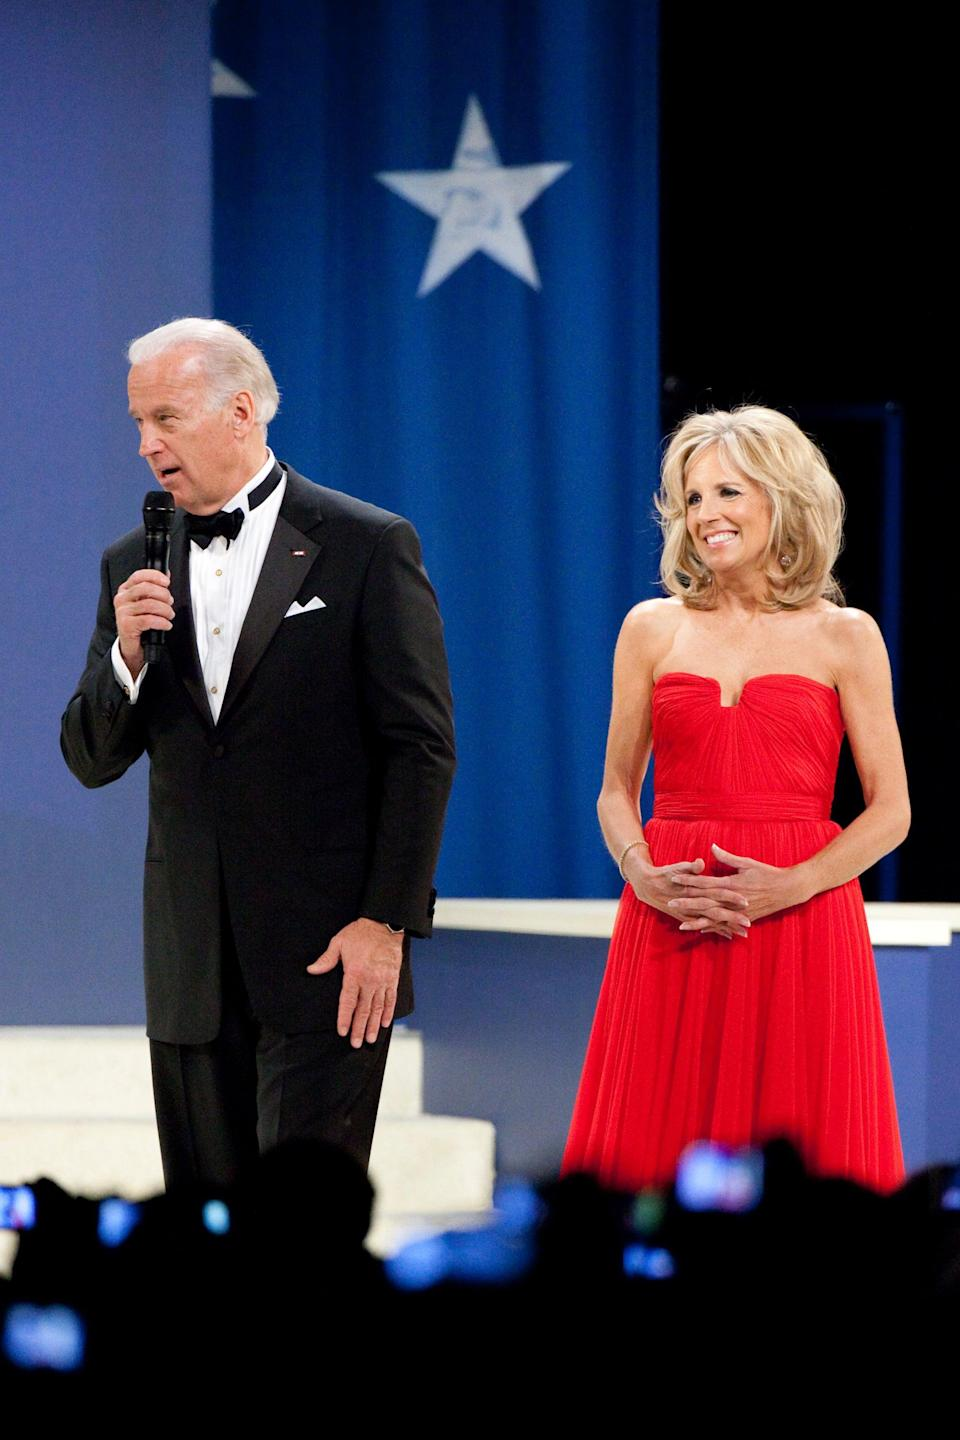 <p>Dr. Biden wore this red dress by Lebanese designer Reem Acra for the Inaugural Ball celebrating US President Barack Obama in 2009. Acra used her studies of culture and world travel to influence the label she launched with her very first bridal collection from New York in 1997.</p>